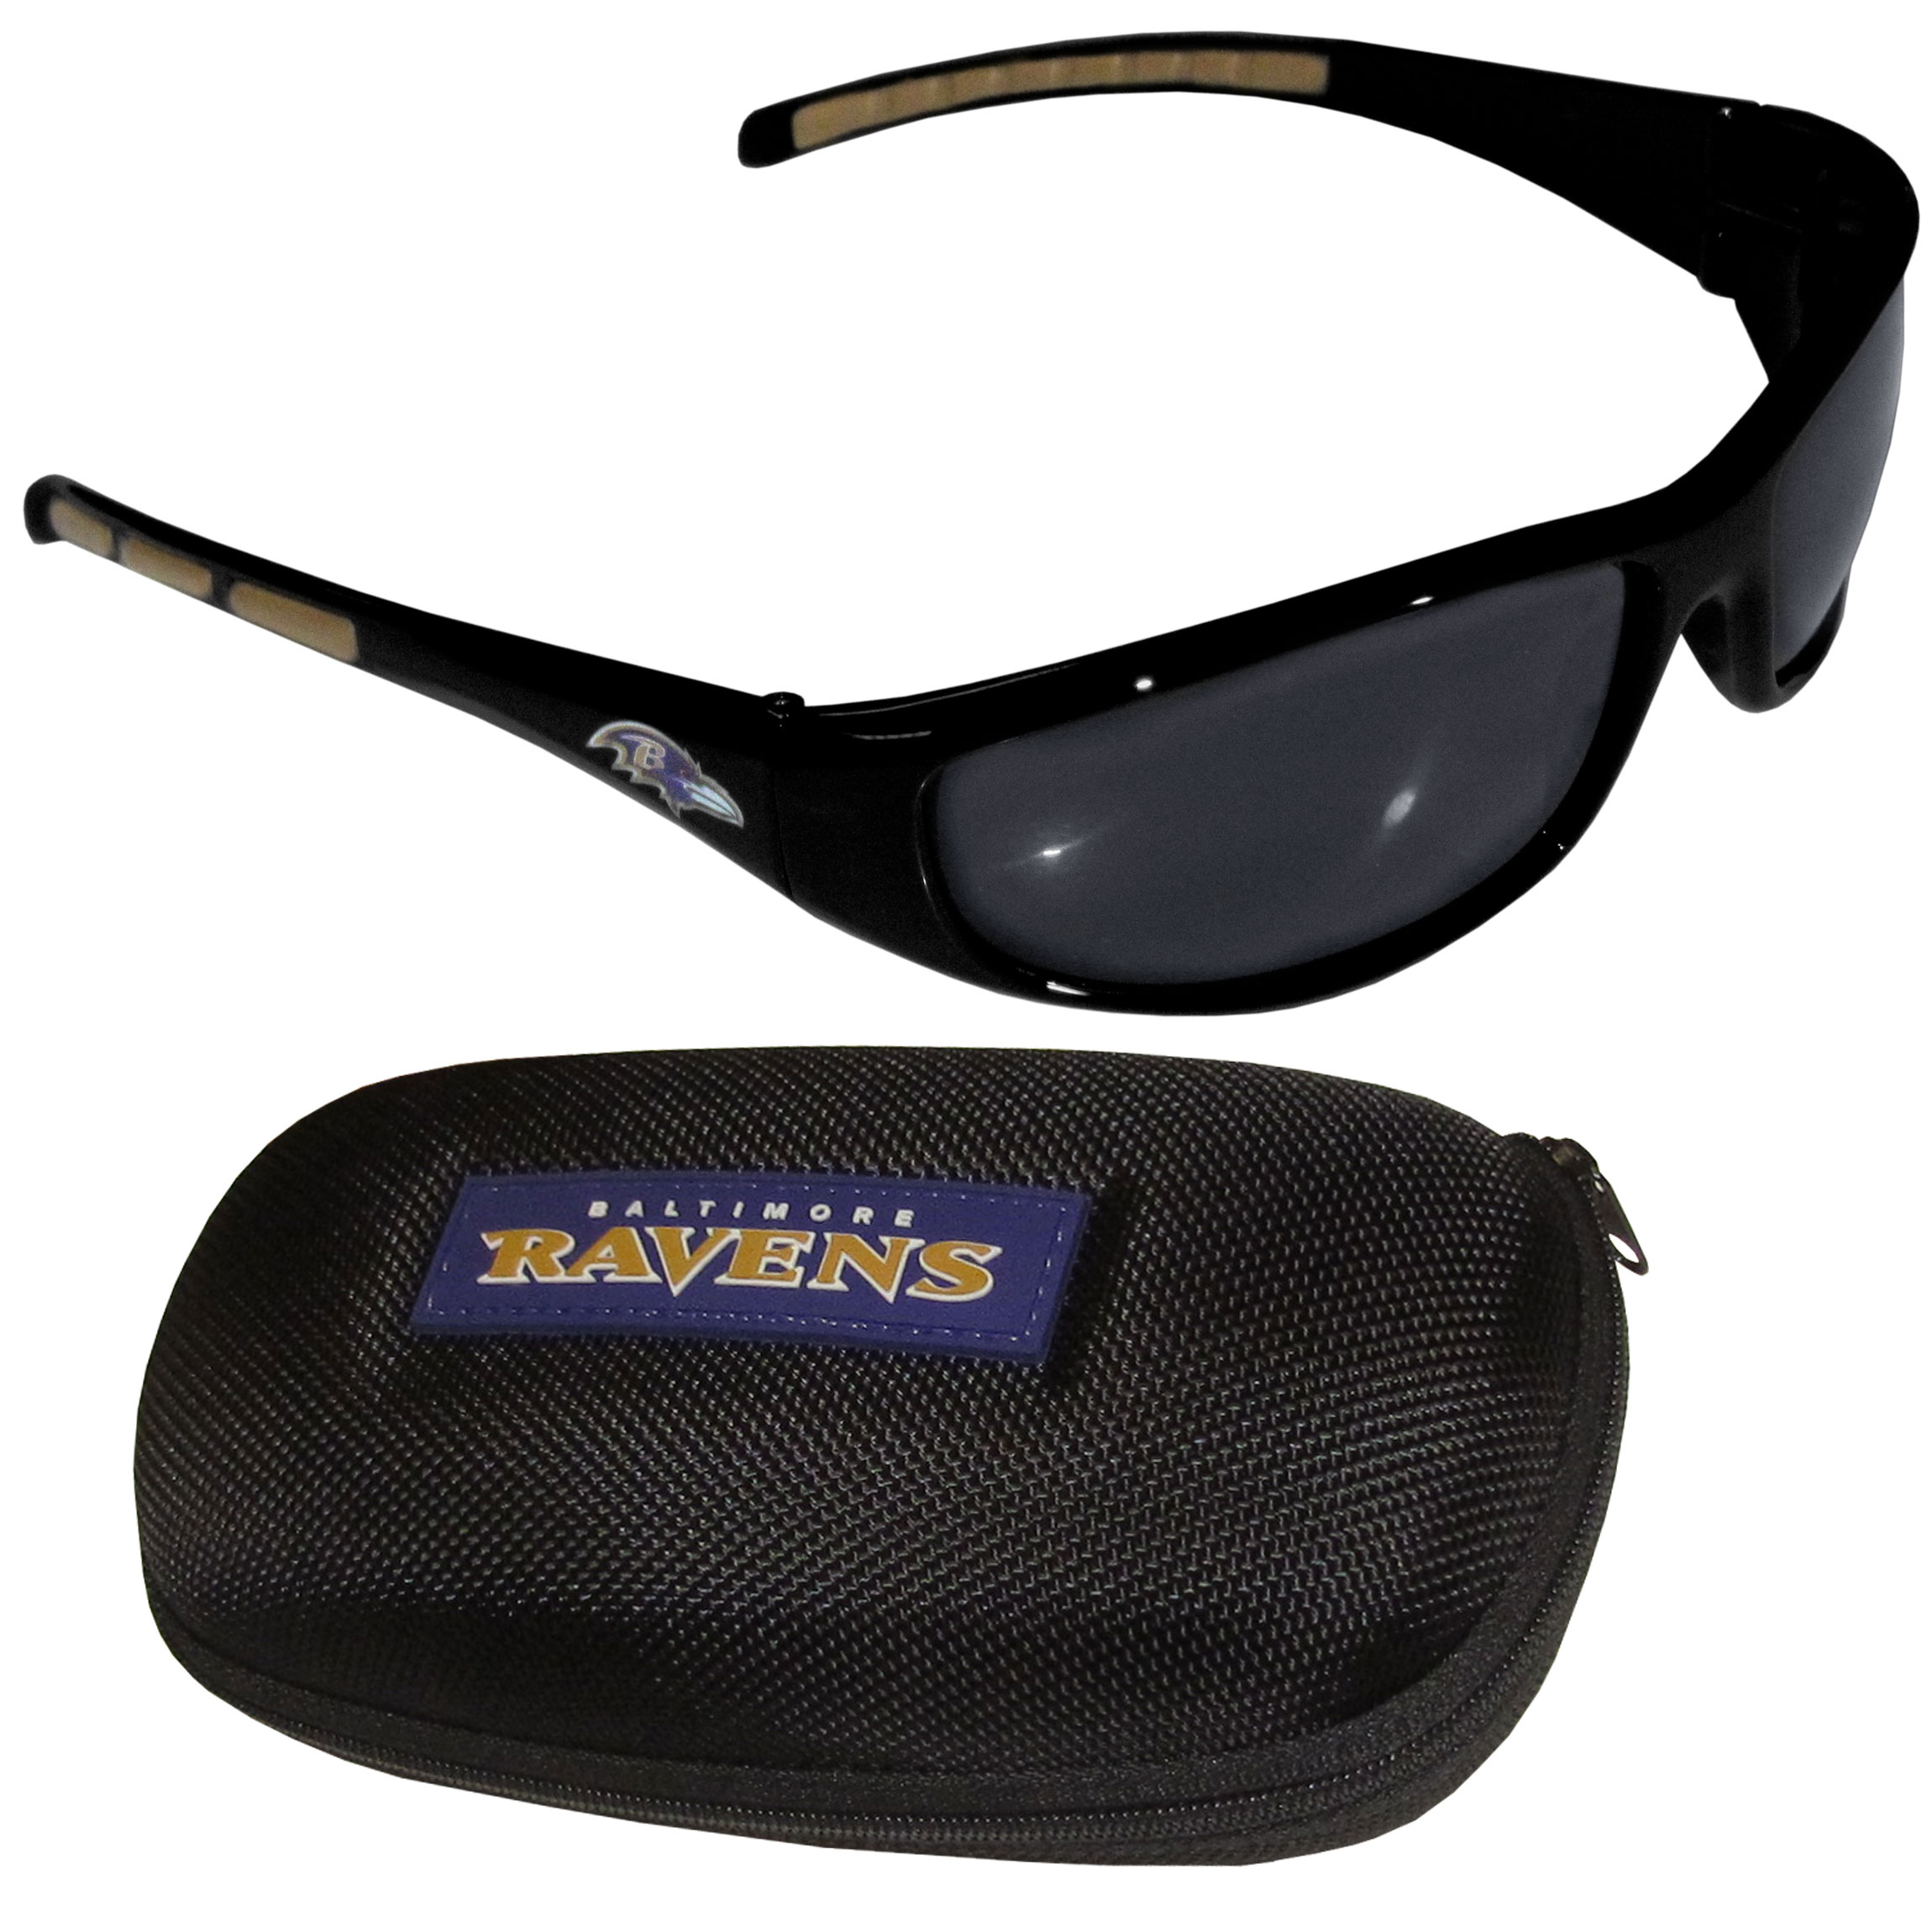 Baltimore Ravens Wrap Sunglass and Case Set - This great set includes a high quality pair of Baltimore Ravens wrap sunglasses and hard carrying case.